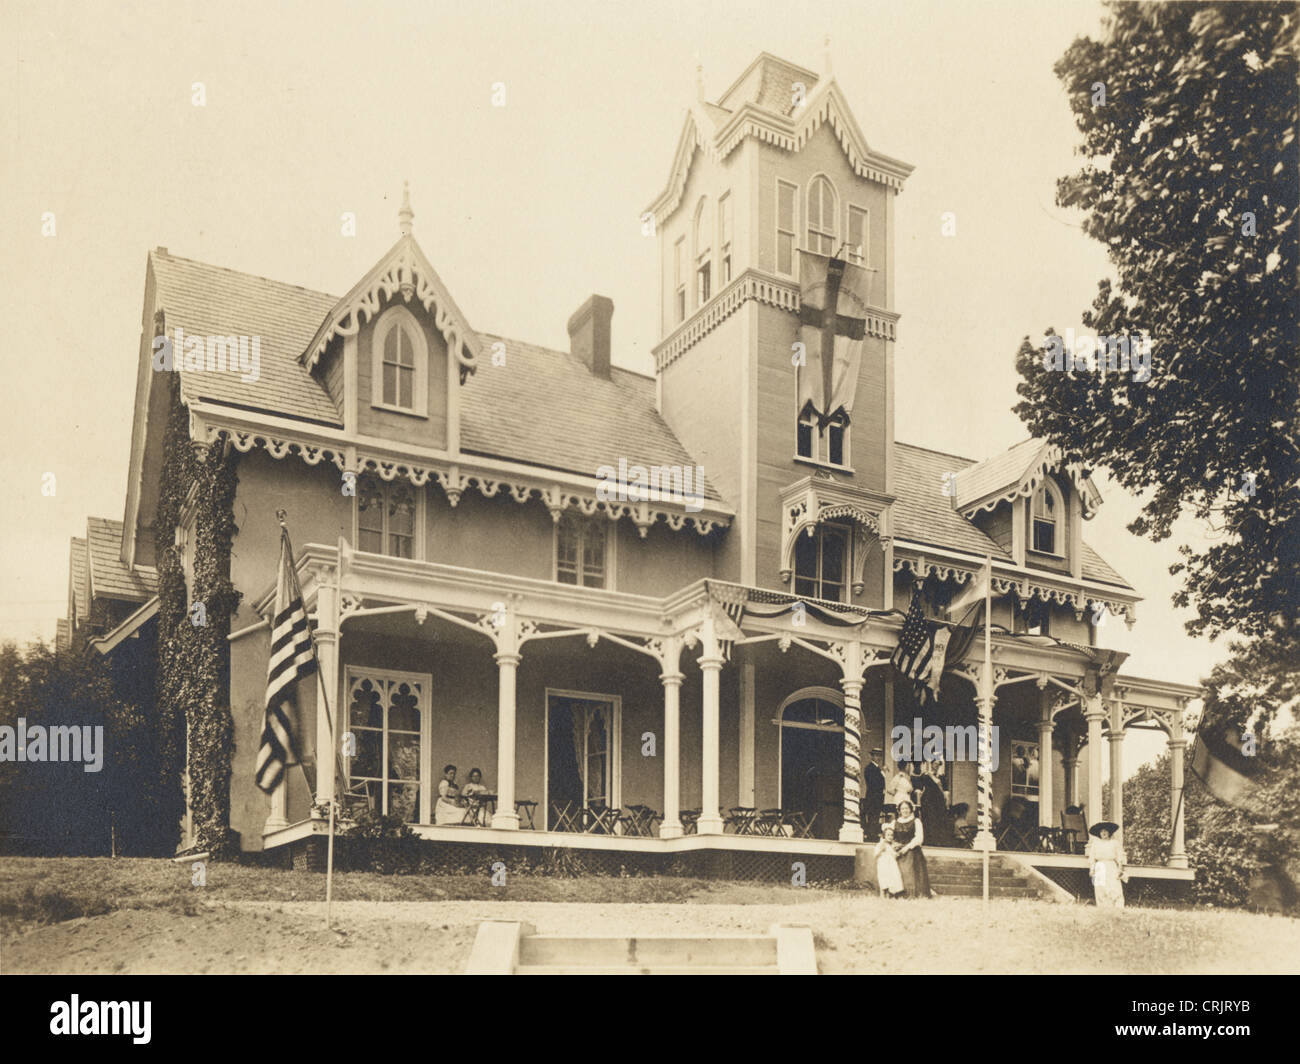 Vast Steamboat Gothic Early Victorian Mansion - Stock Image